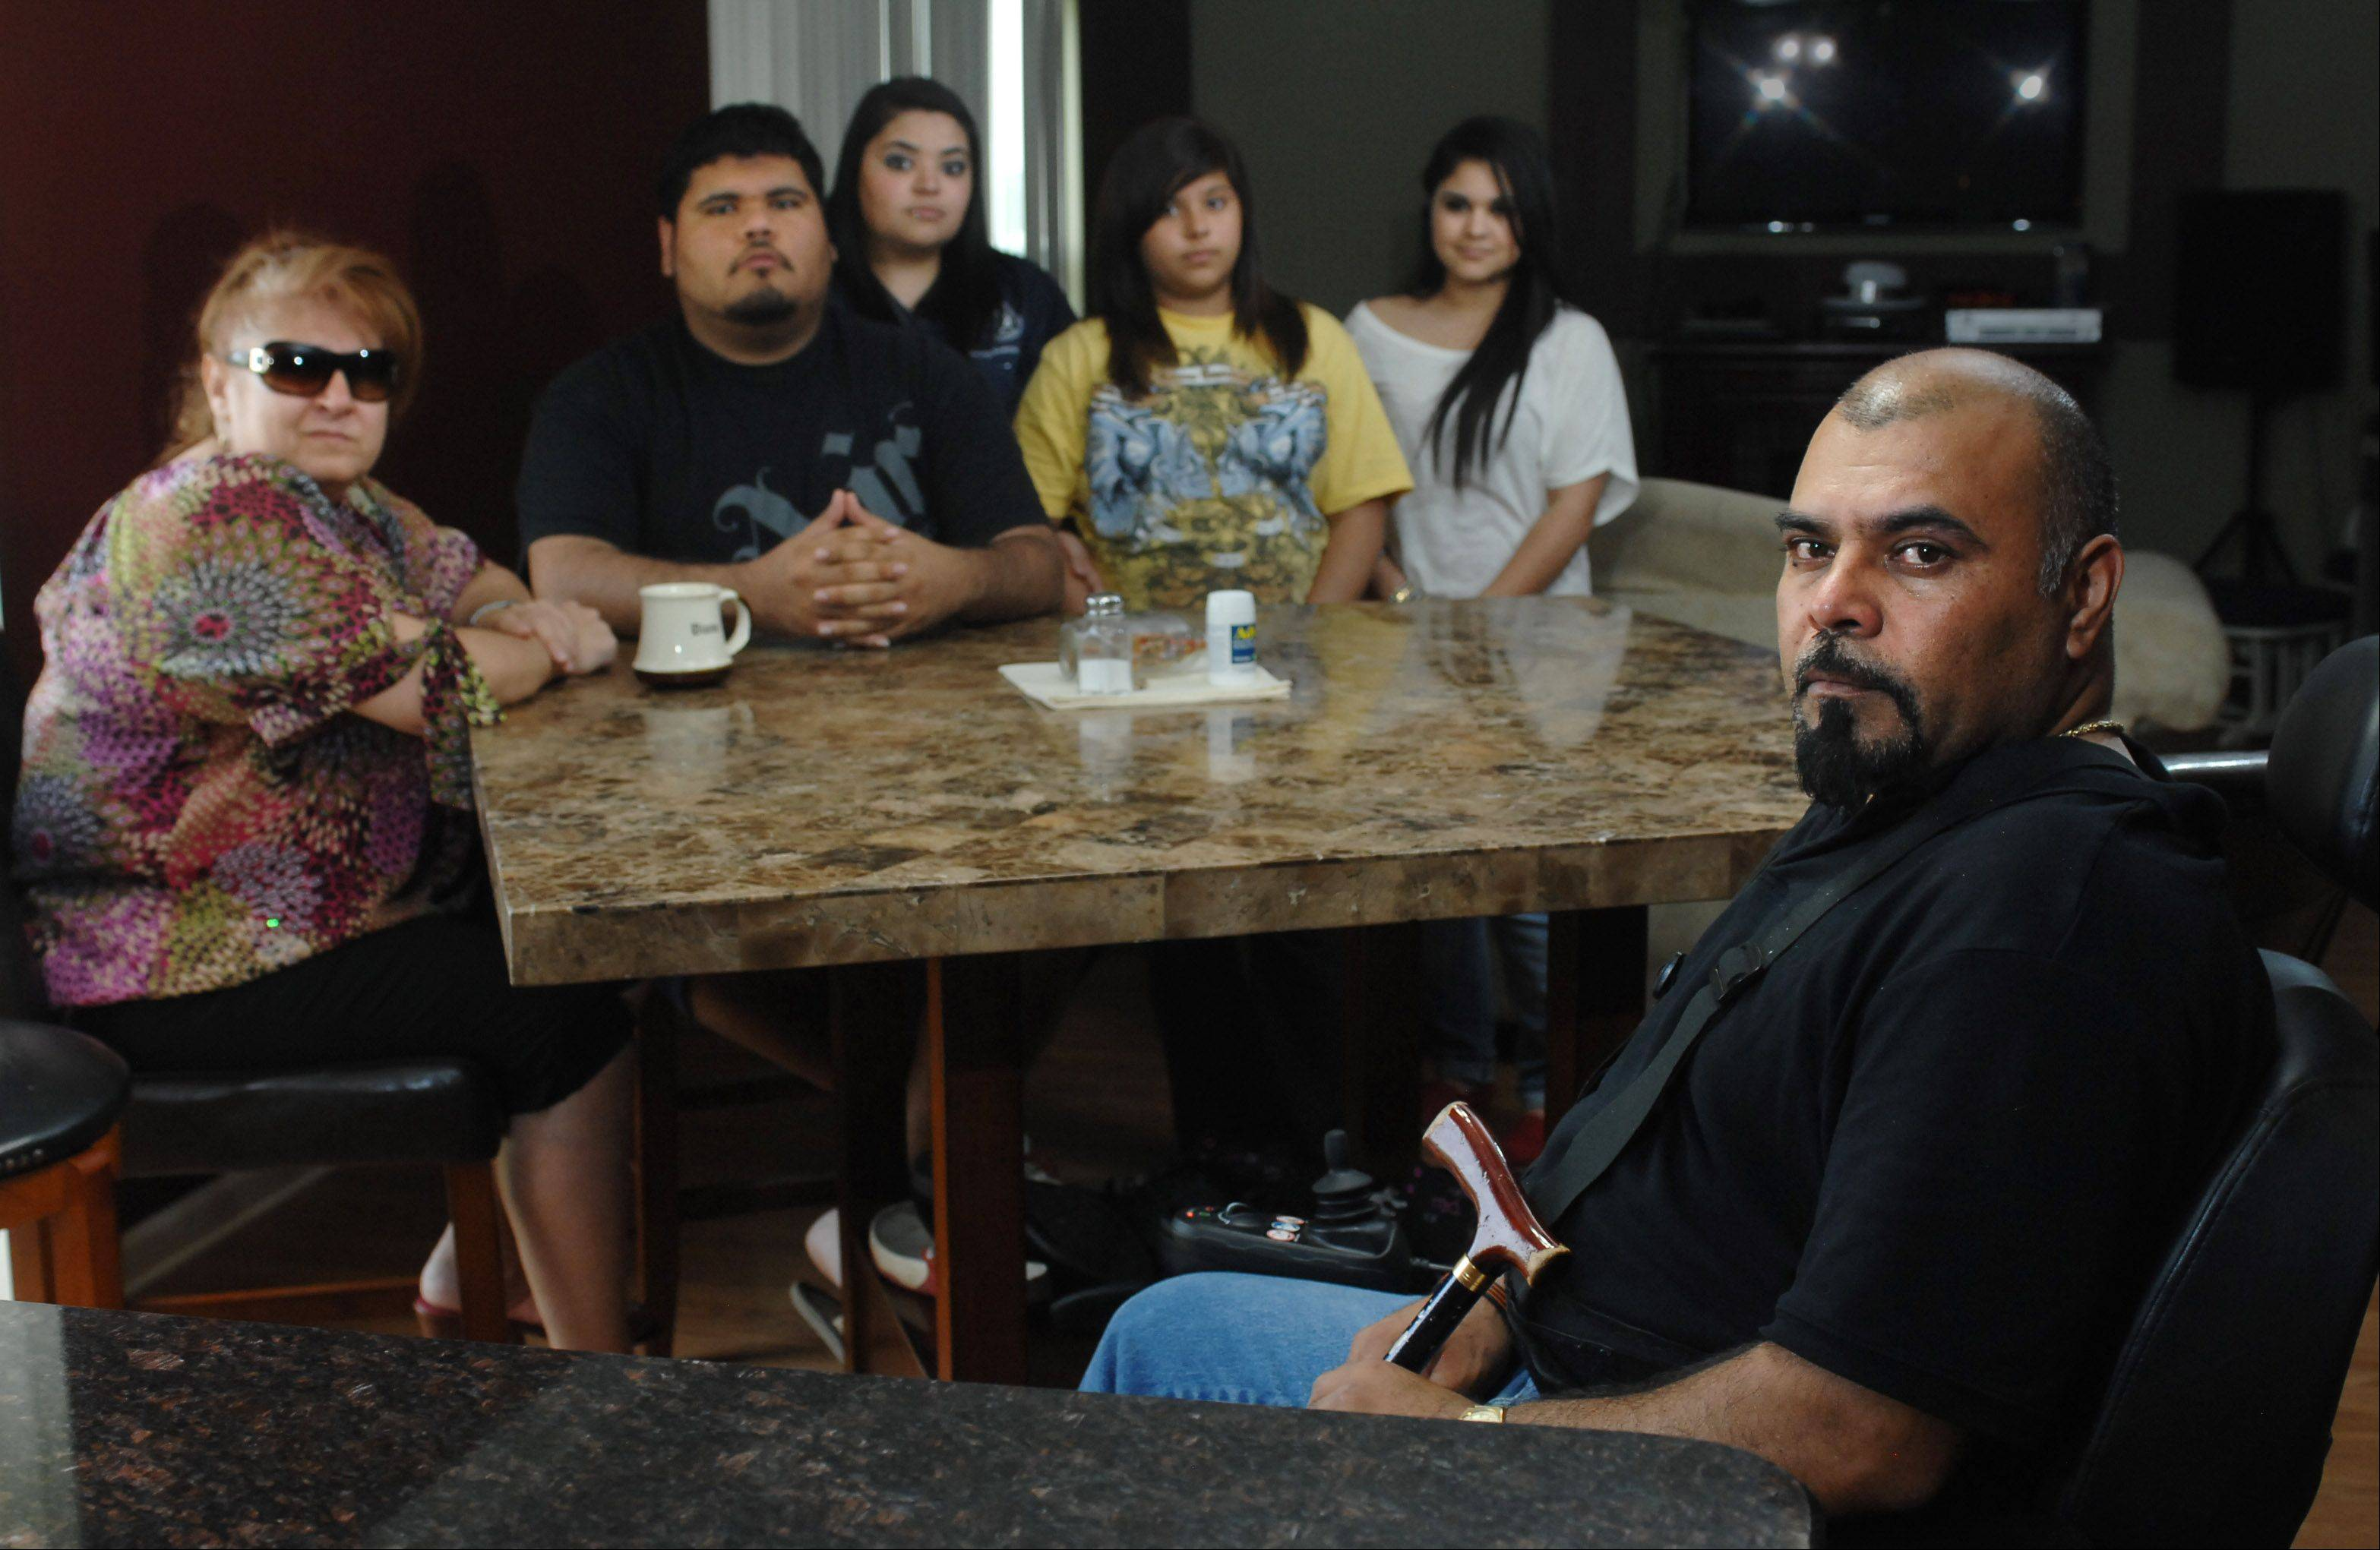 Francisco Valdez and his family, wife Diana, son Francisco Jr., 22, and daughters Yvette, 20, Yurittza, 12, and Yessenia, 18. Valdez was with his children on the way to visit their mother in the hospital when they collided head-on with a drunken driver. Unable to work because of his injuries, Francisco is losing the house he built.